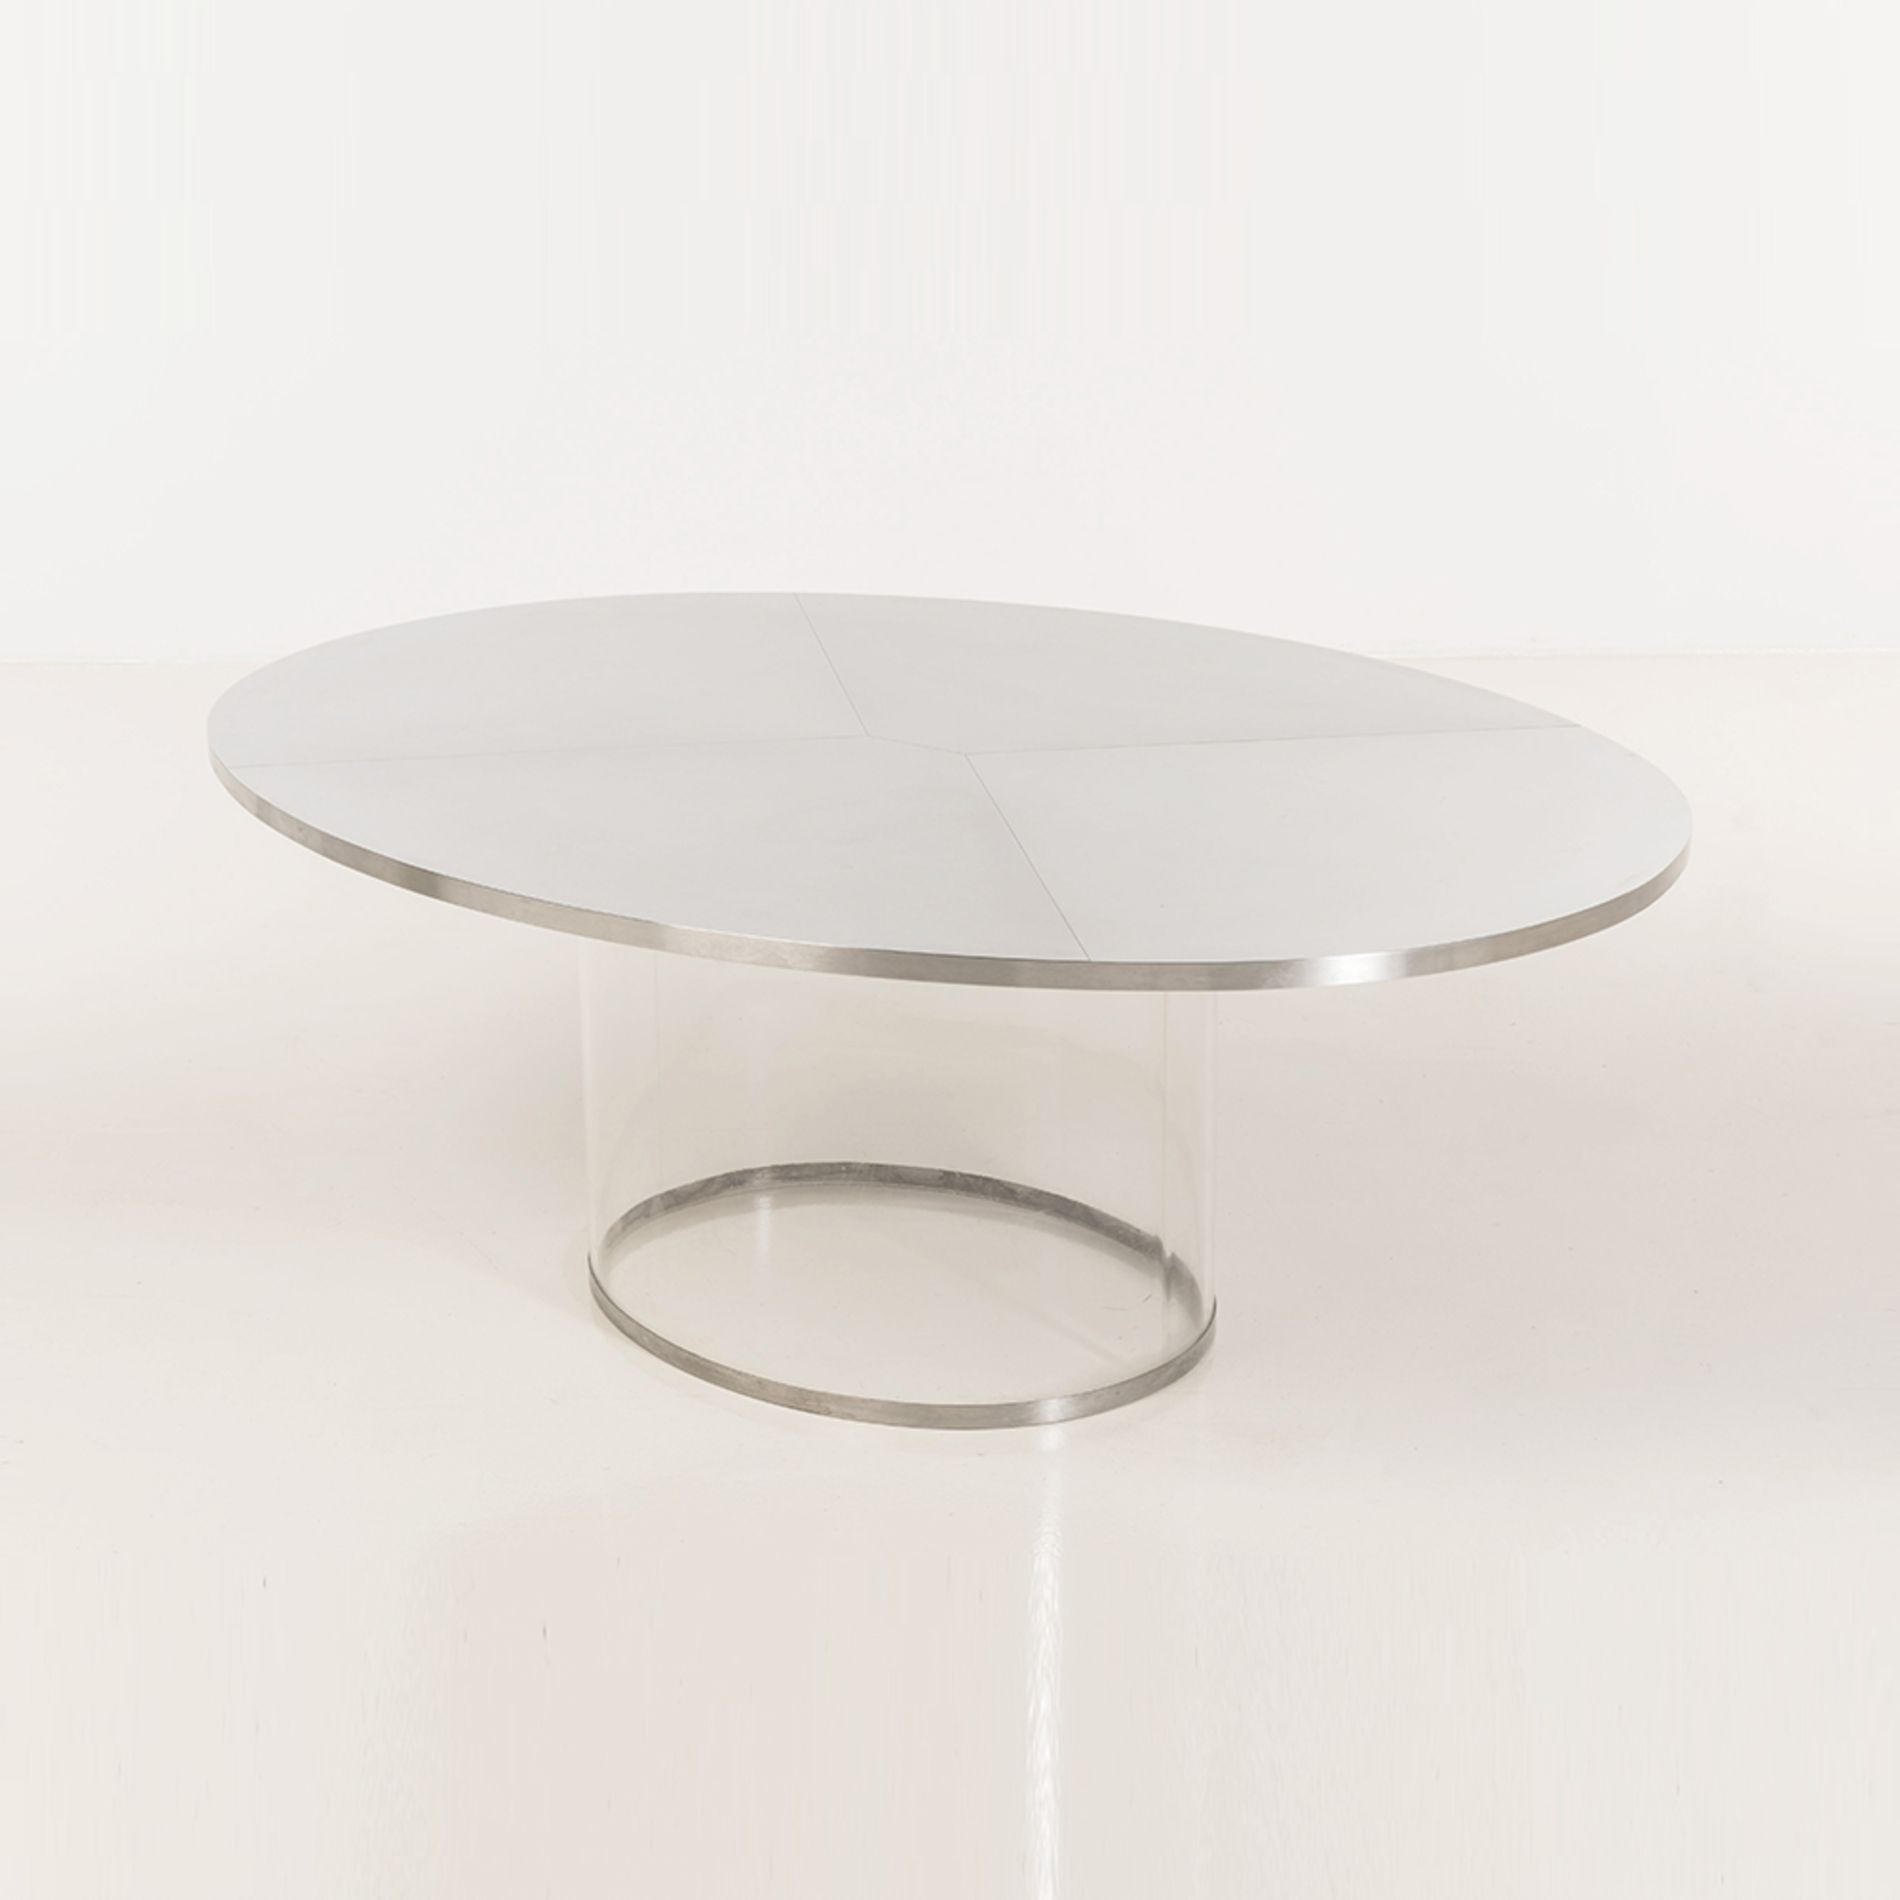 1bd8a91bd96ac96732763e911b8bf5c1 Unique De Table Basse Plexiglas